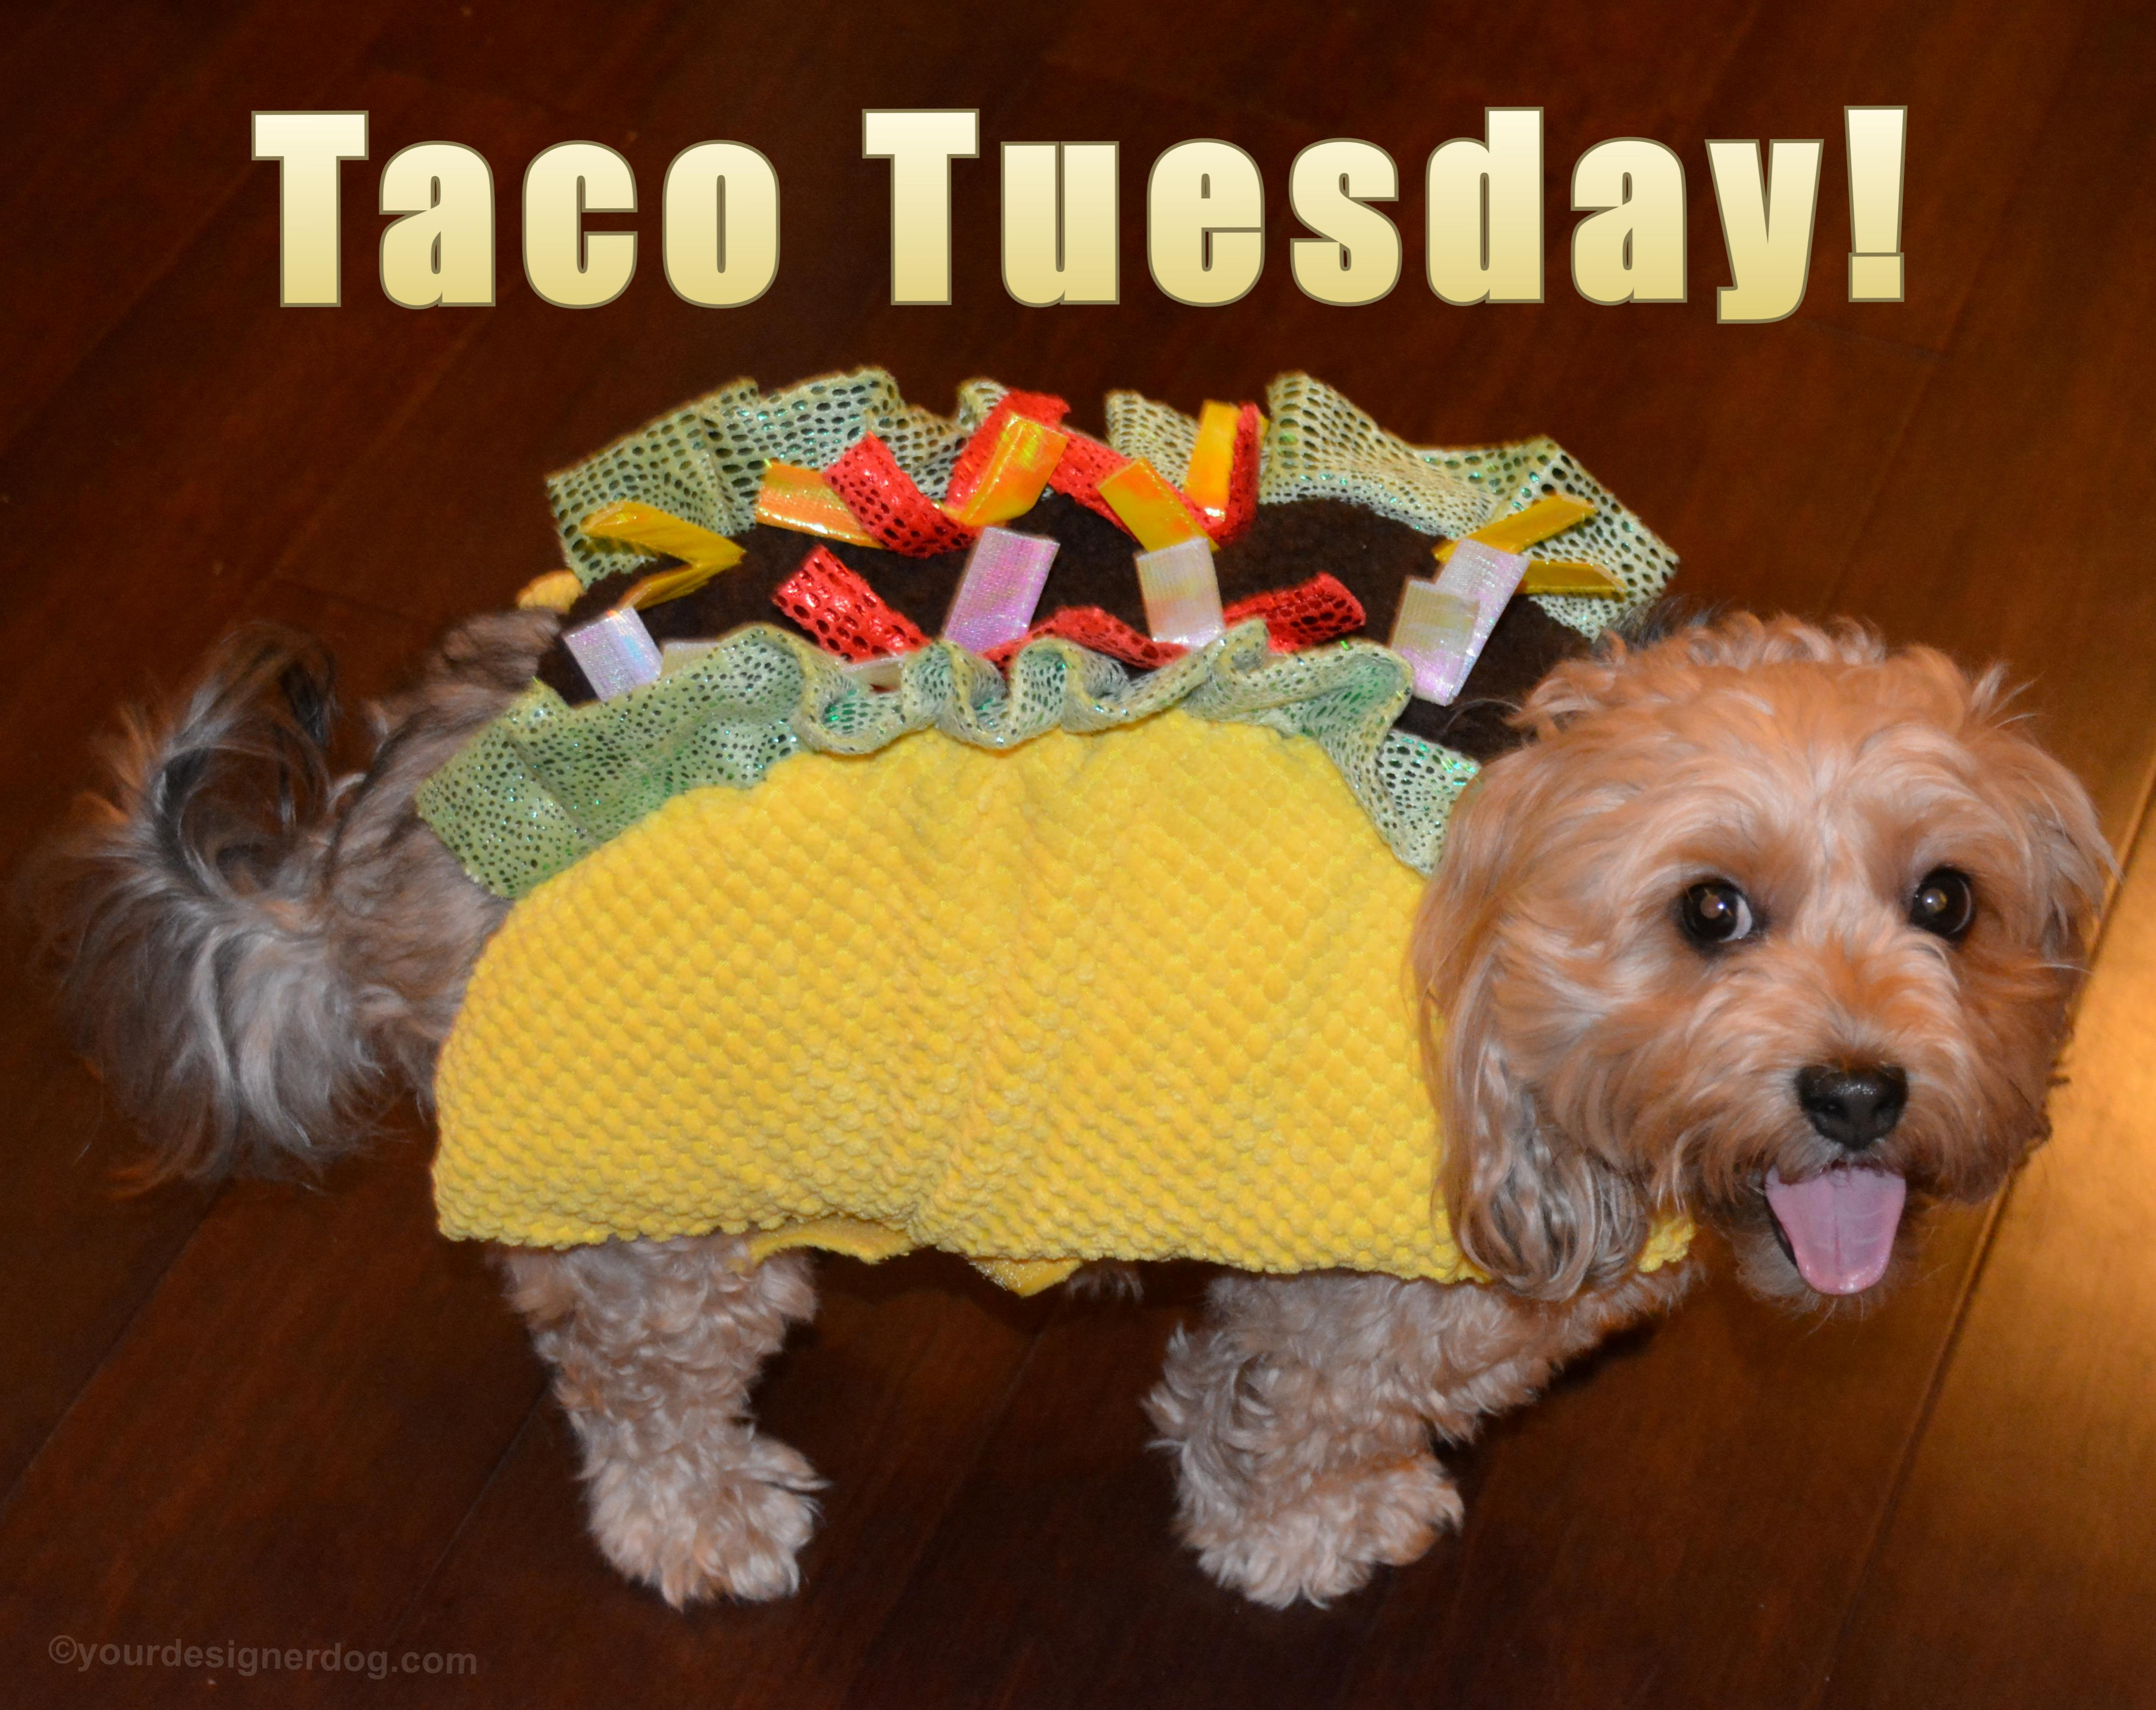 dogs, designer dogs, Yorkipoo, yorkie poo, taco halloween costume, dog costume, tongue out, taco tuesday